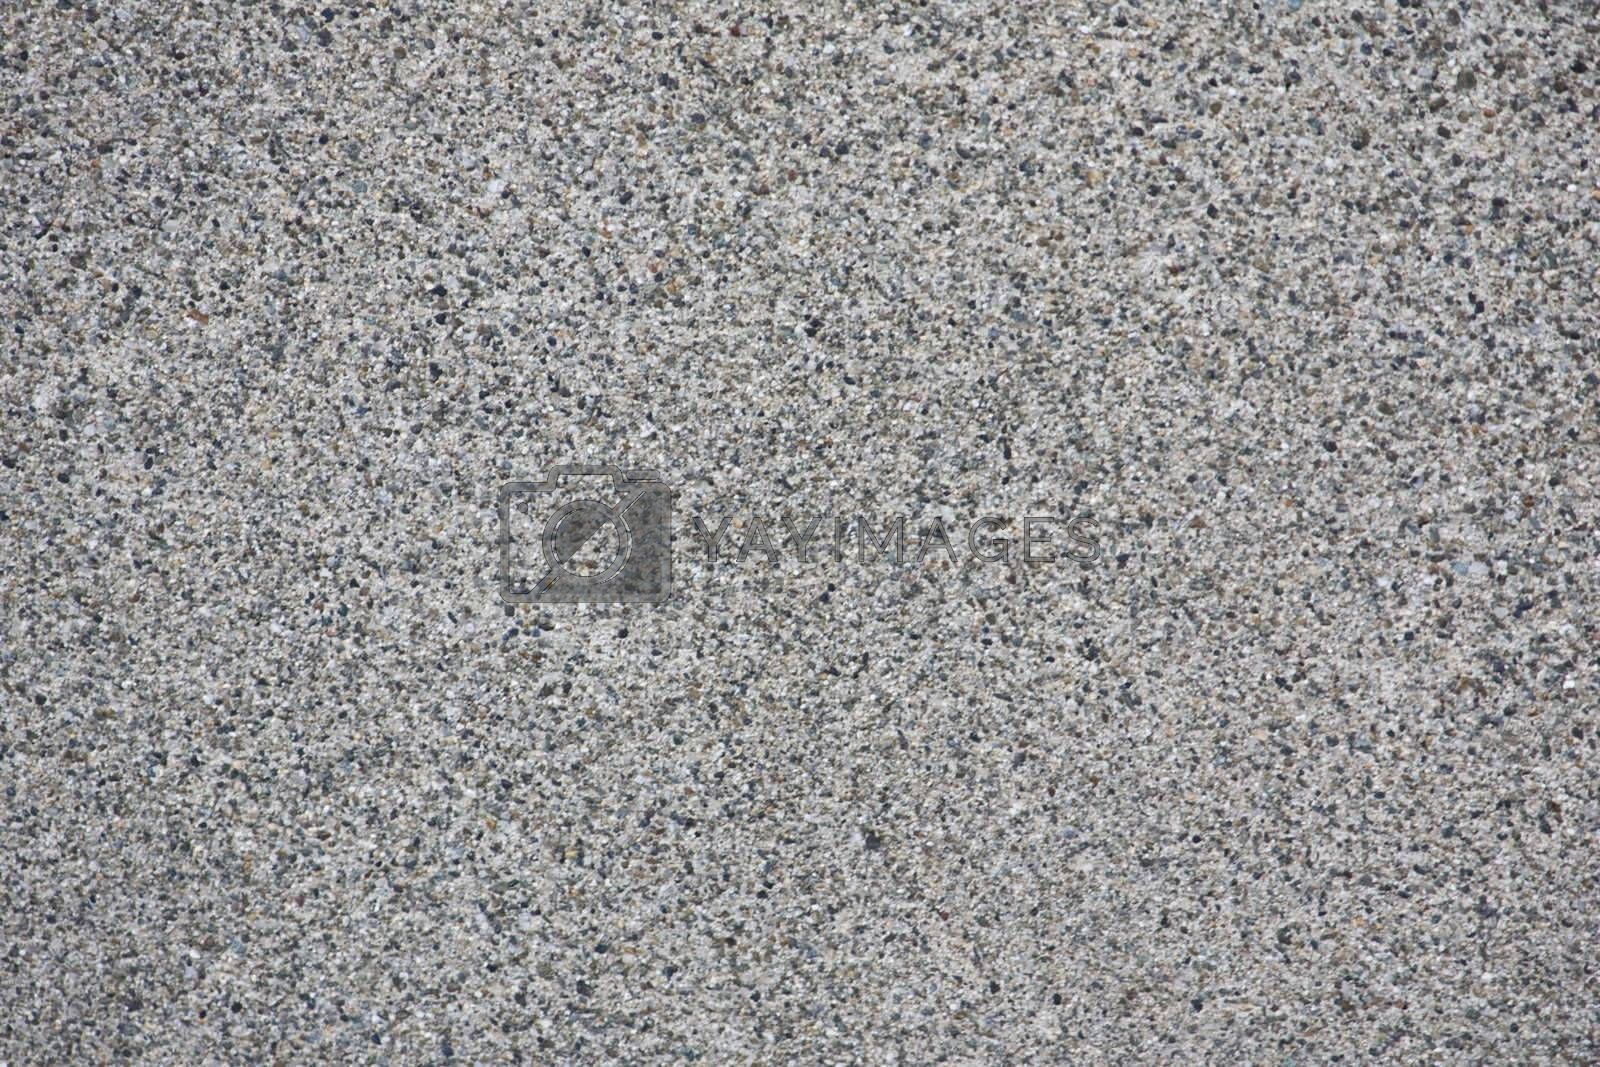 Sandy Coarse Grey Grit Grunge Rough Texture Background or Wall Paper. Also looks like static or tv signal noise.